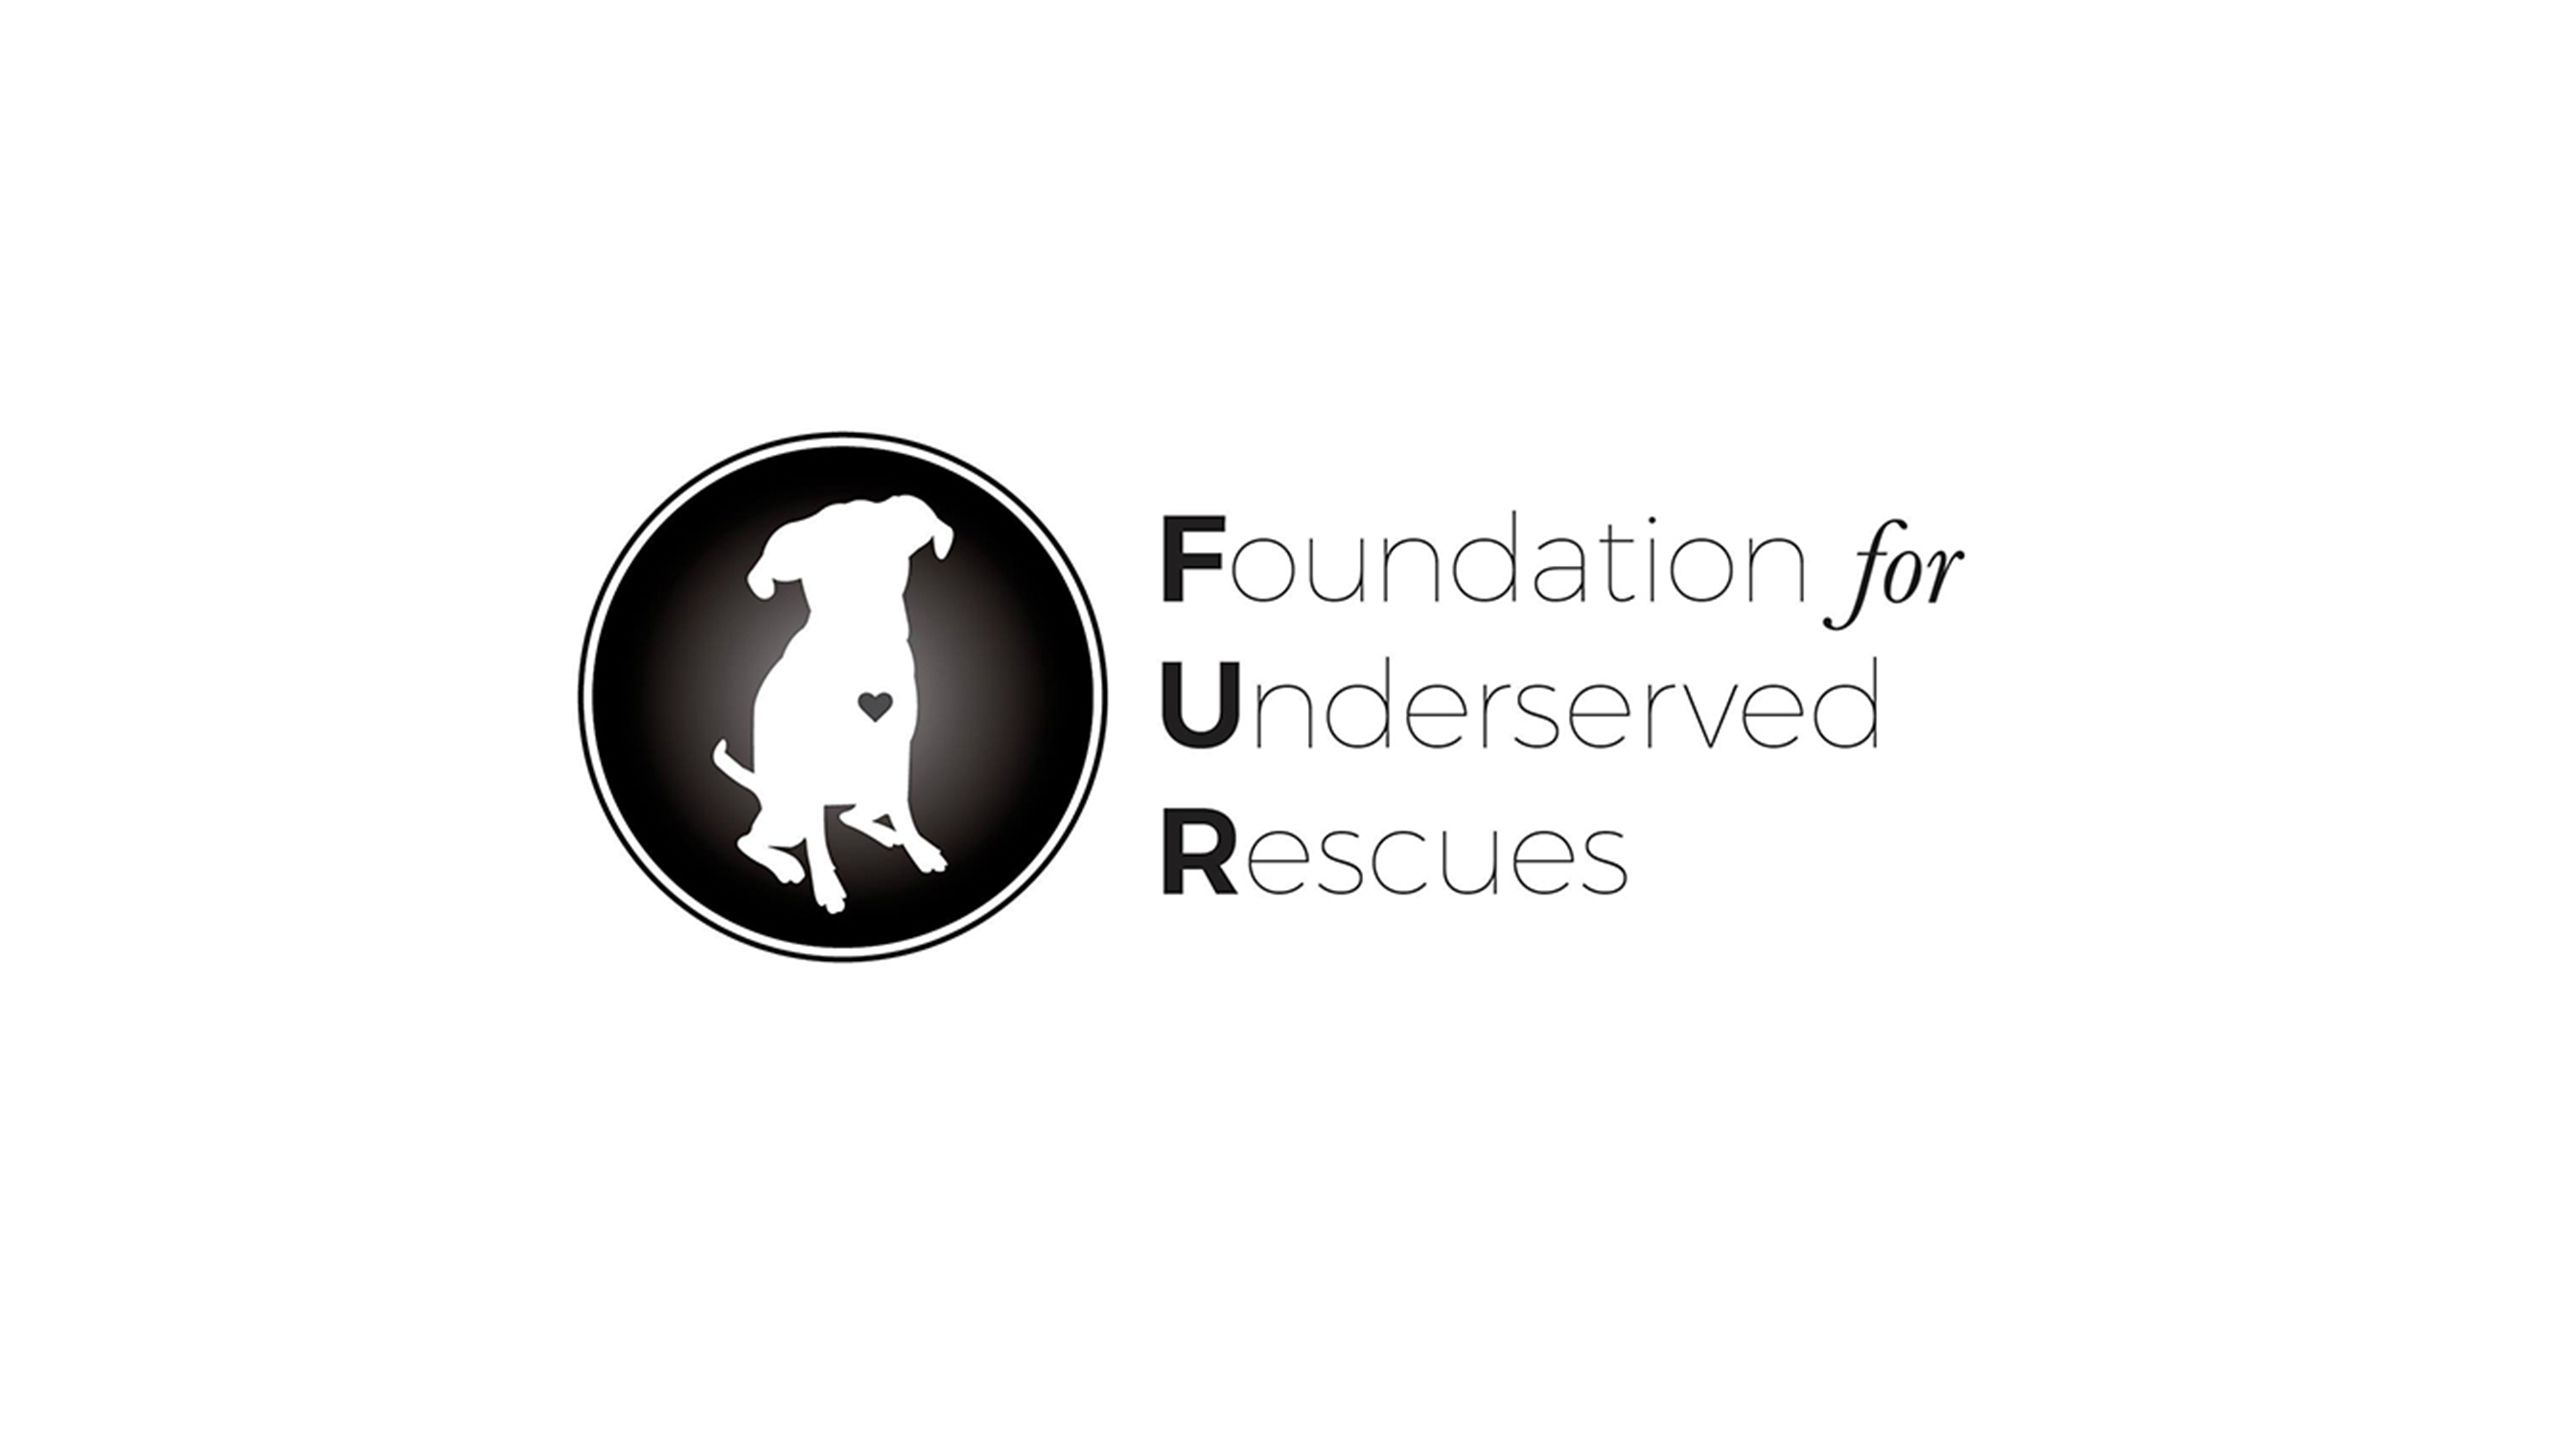 Kevin Huber's Foundation for Underserved Rescues